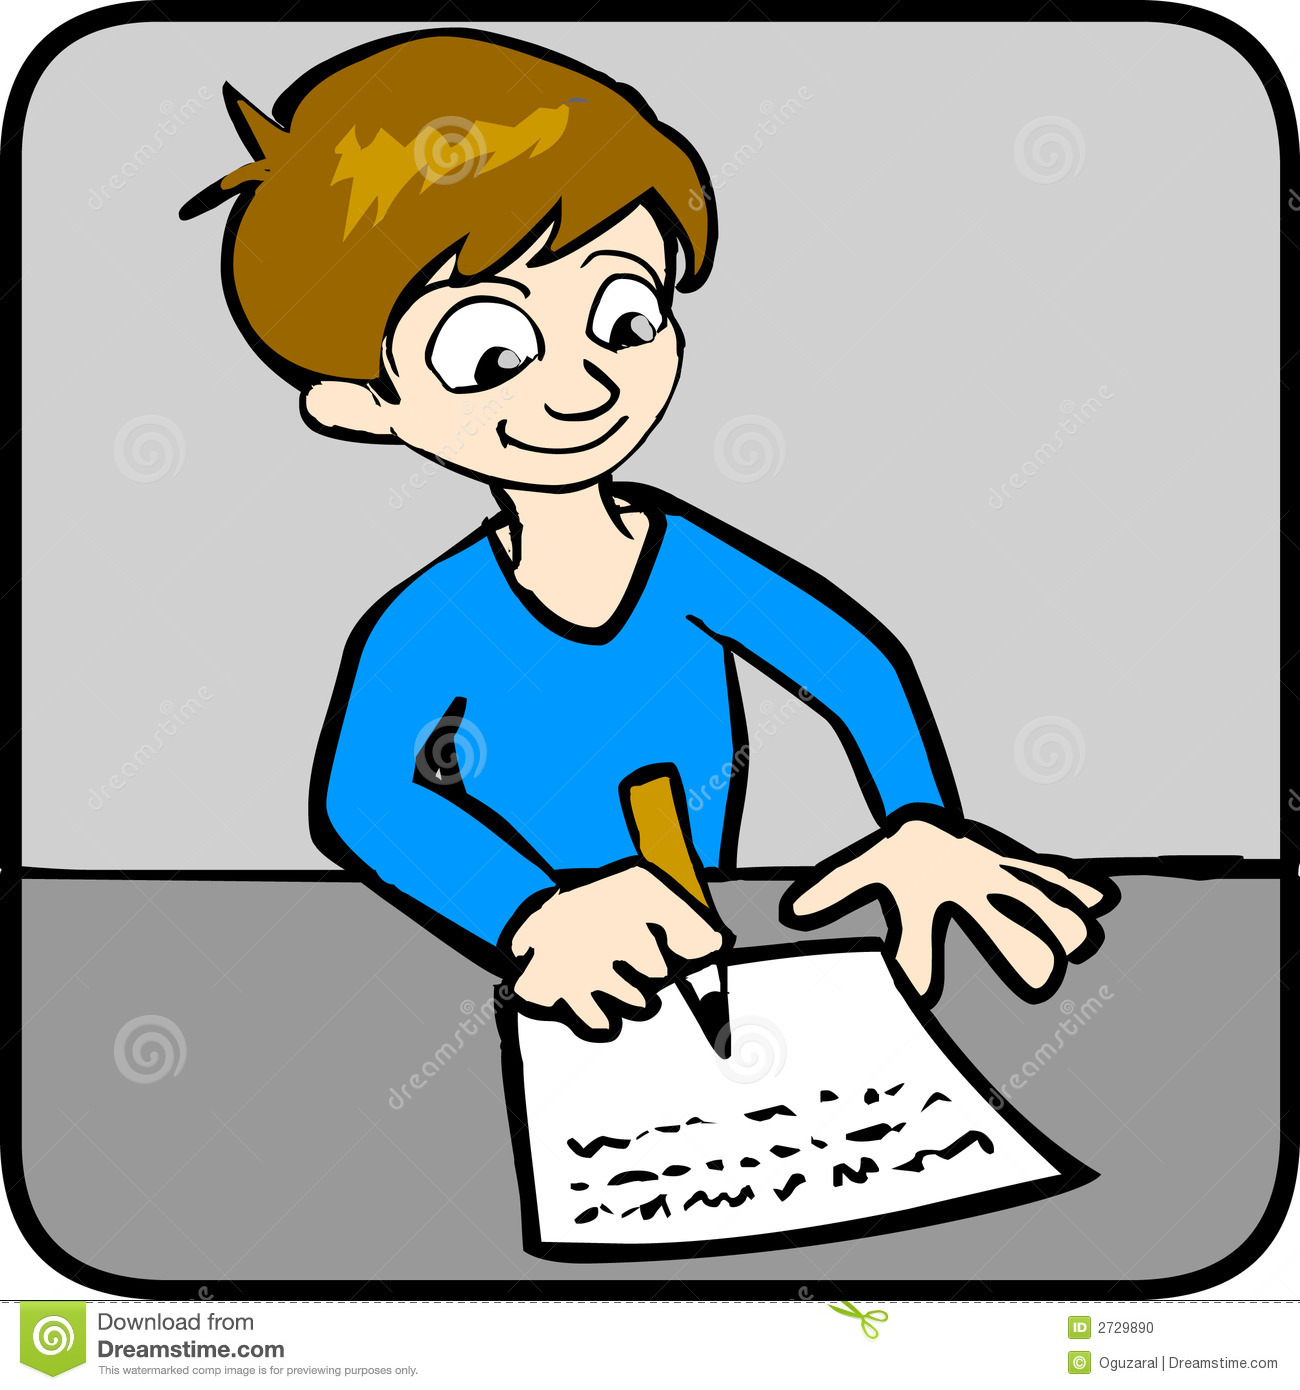 Boy turning in assignment clipart. Clipartfest doing homework